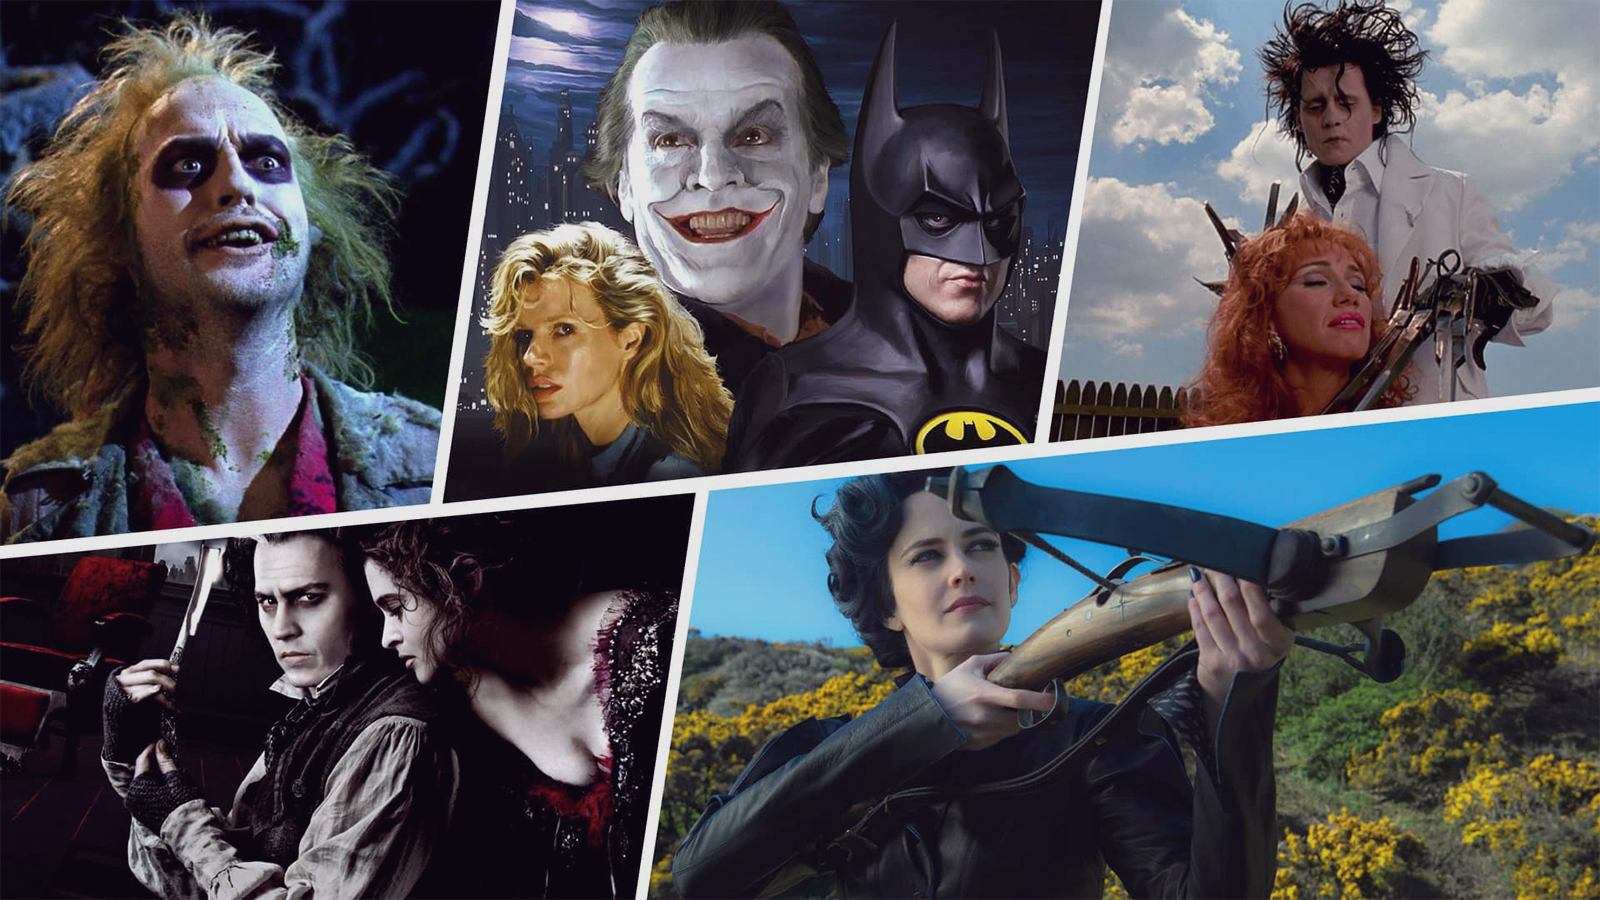 Halloween costume ideas inspired by movie/TV show characters